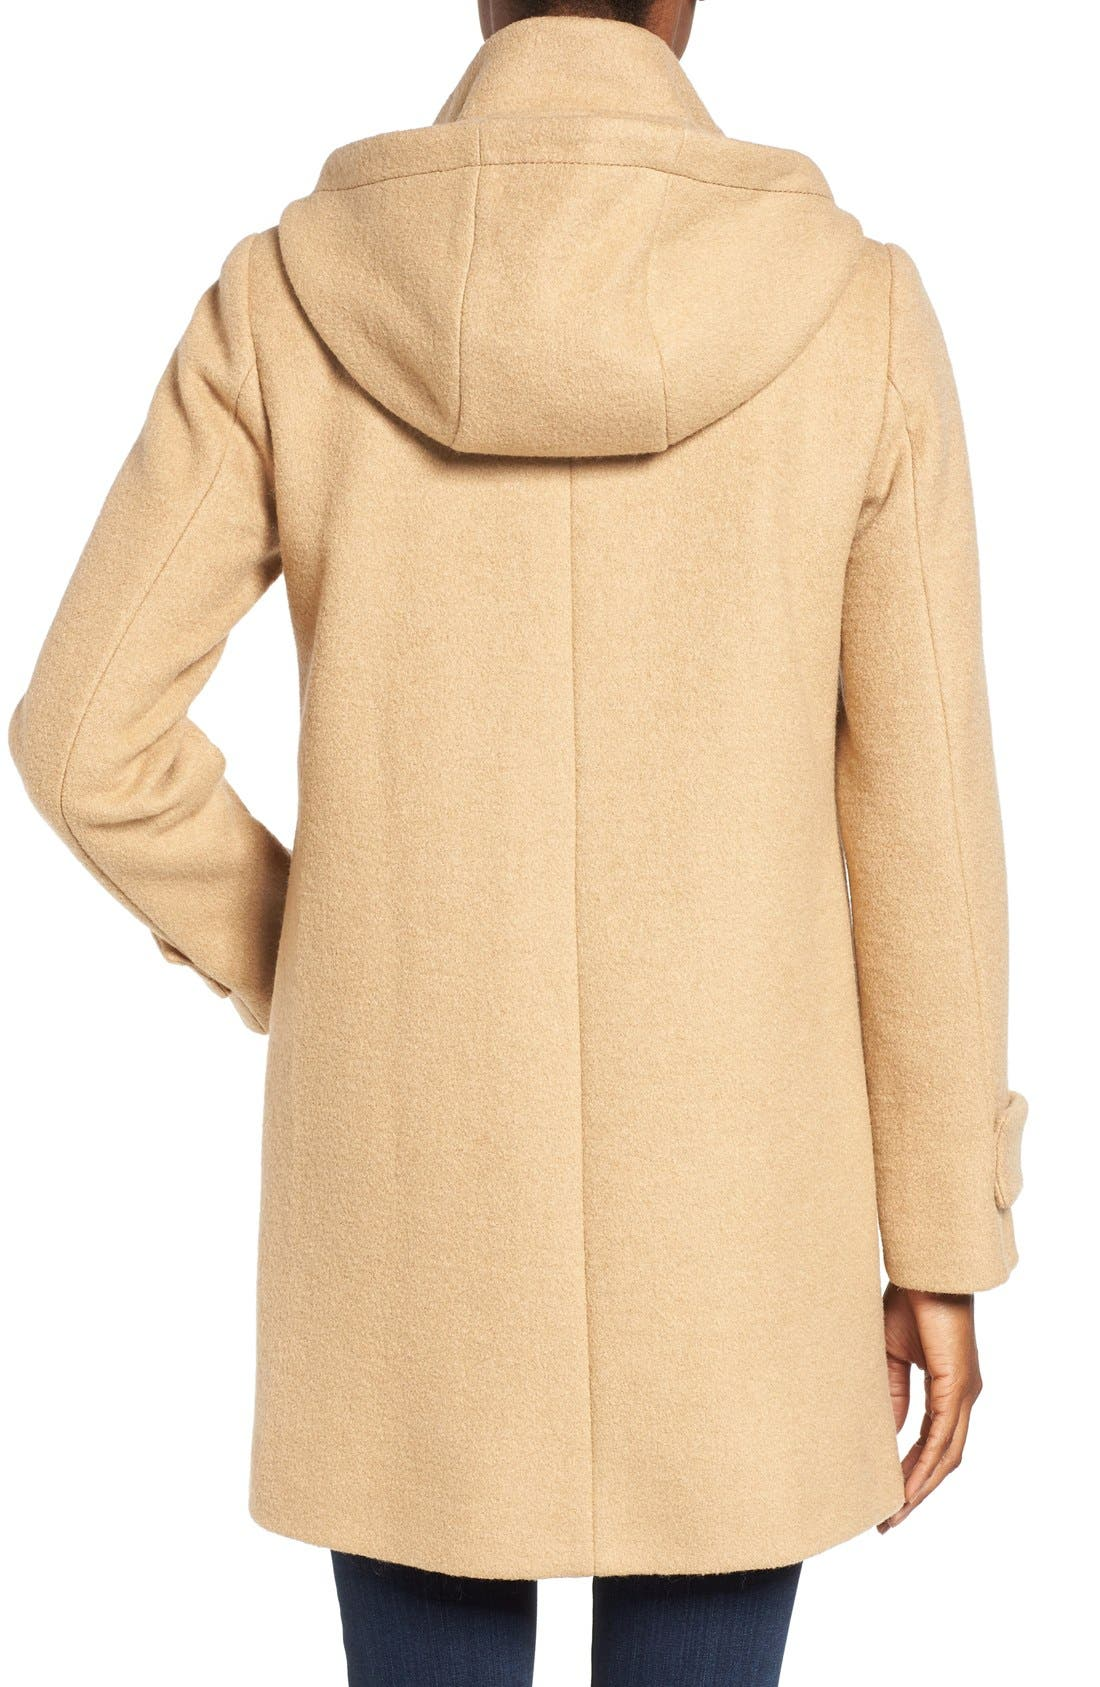 Alternate Image 2  - Vince Camuto Boiled Wool Blend Duffle Coat